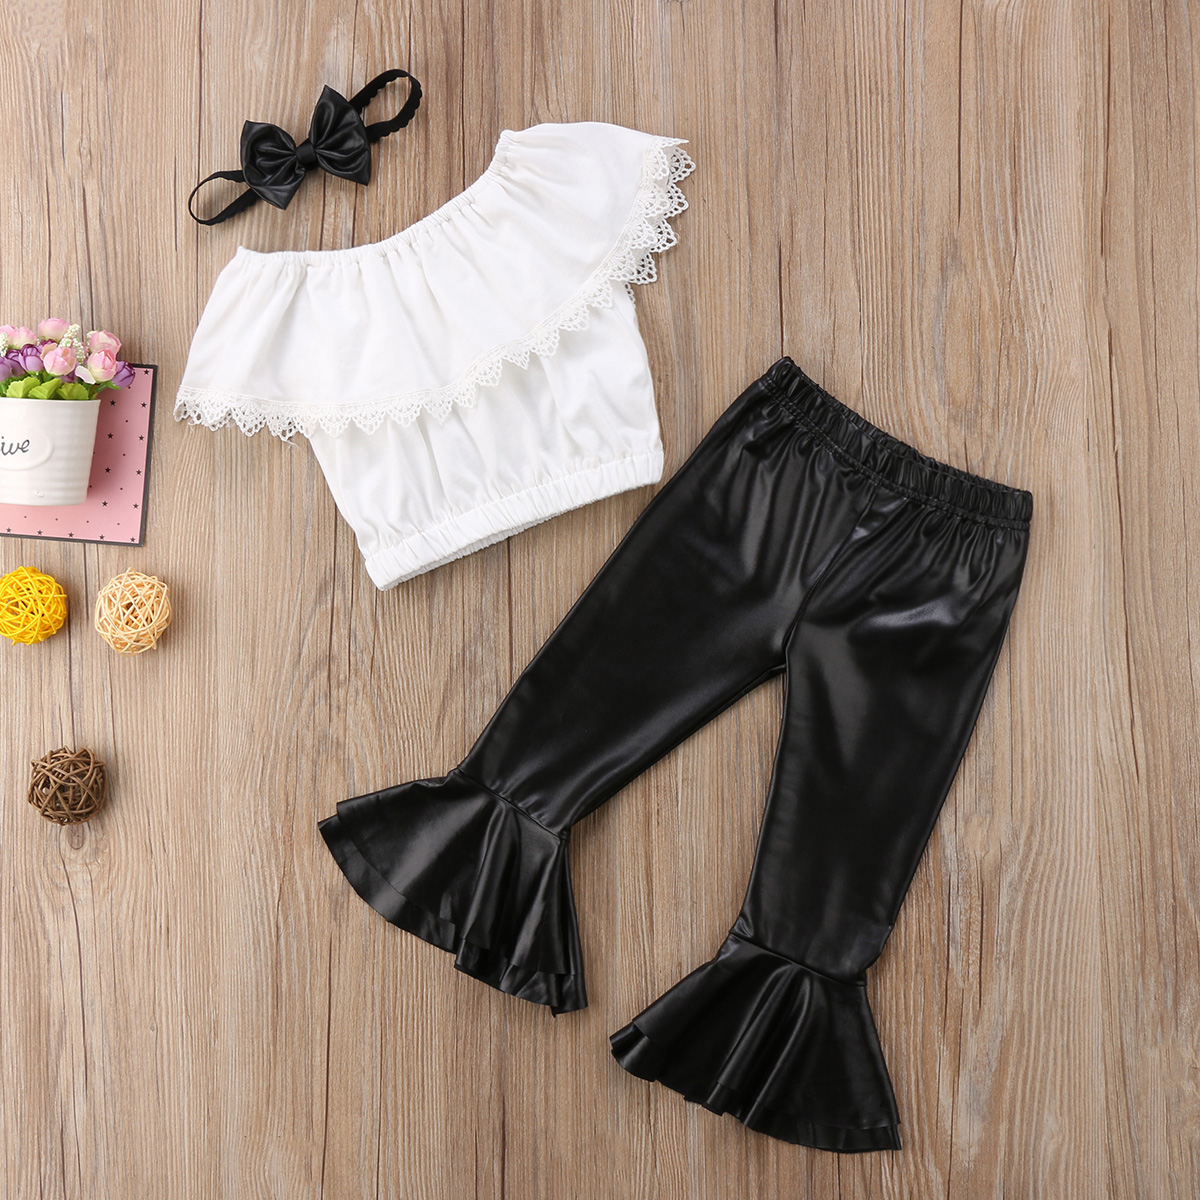 Fashion Cool Toddler Kid Baby Girl Cute Set Strapless Lace Off Shpulder Tops Leather Flare Pants Headband Clothes Set USA